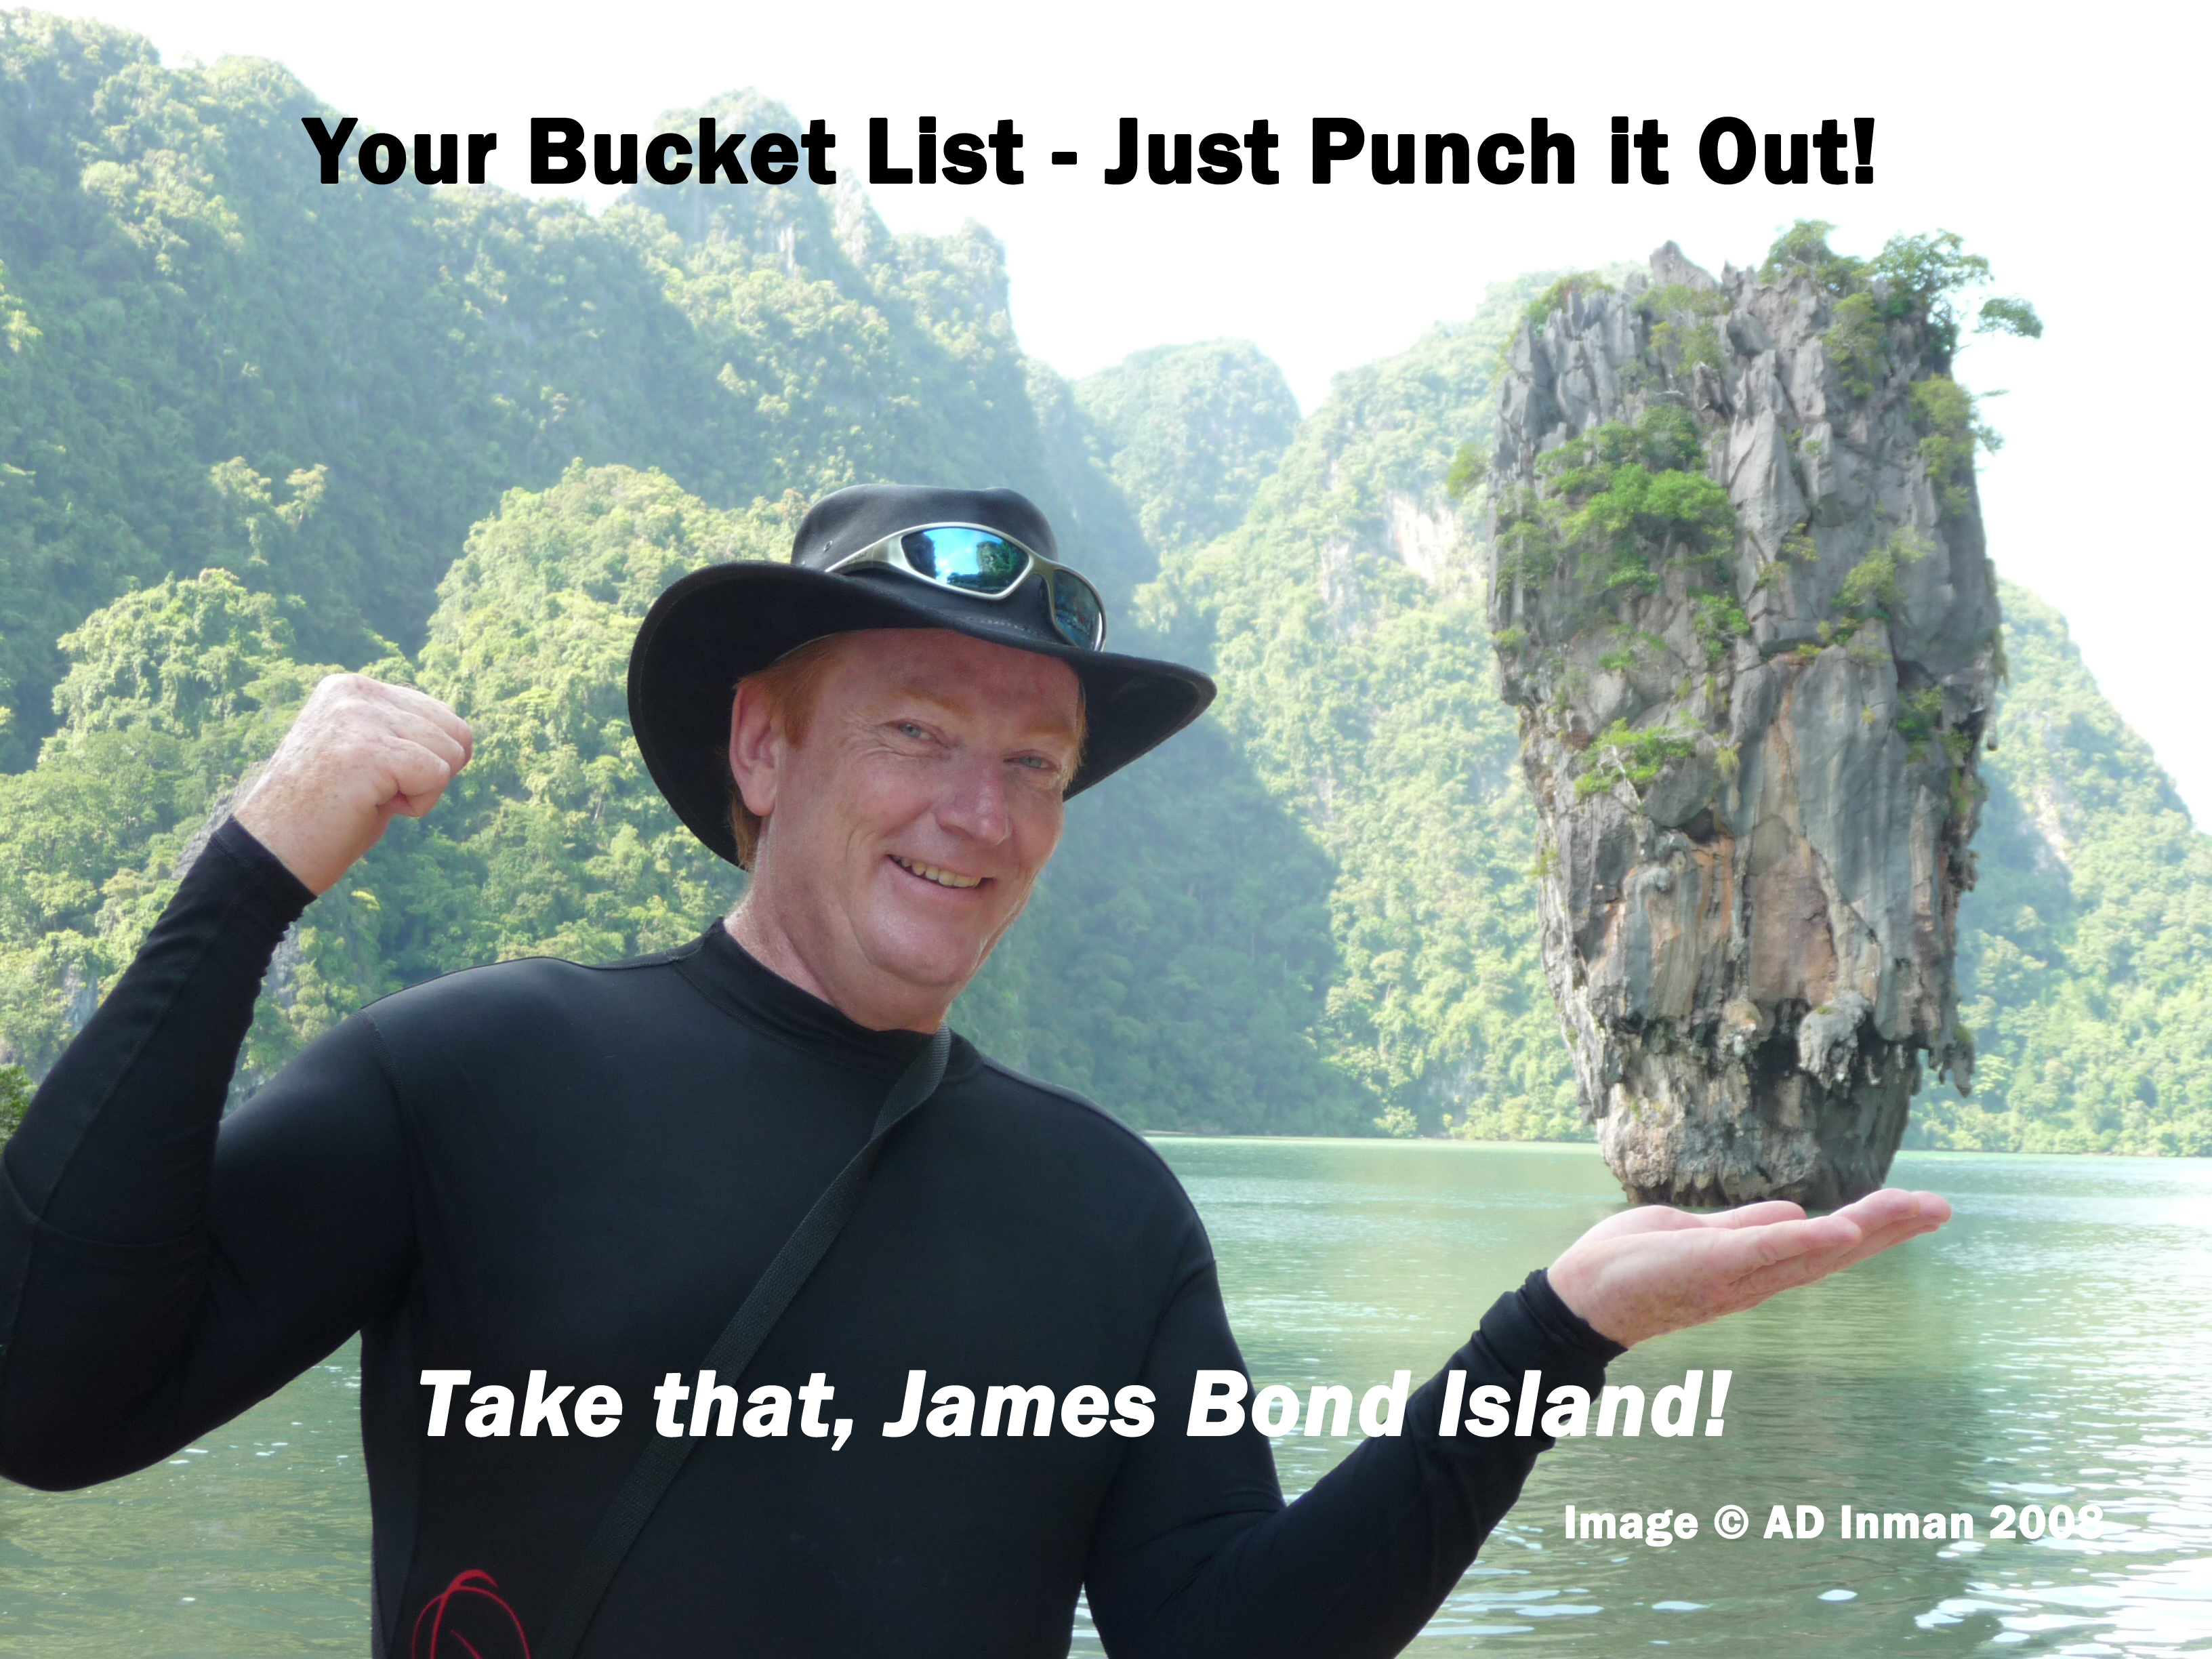 Your bucket list - have one and work through it